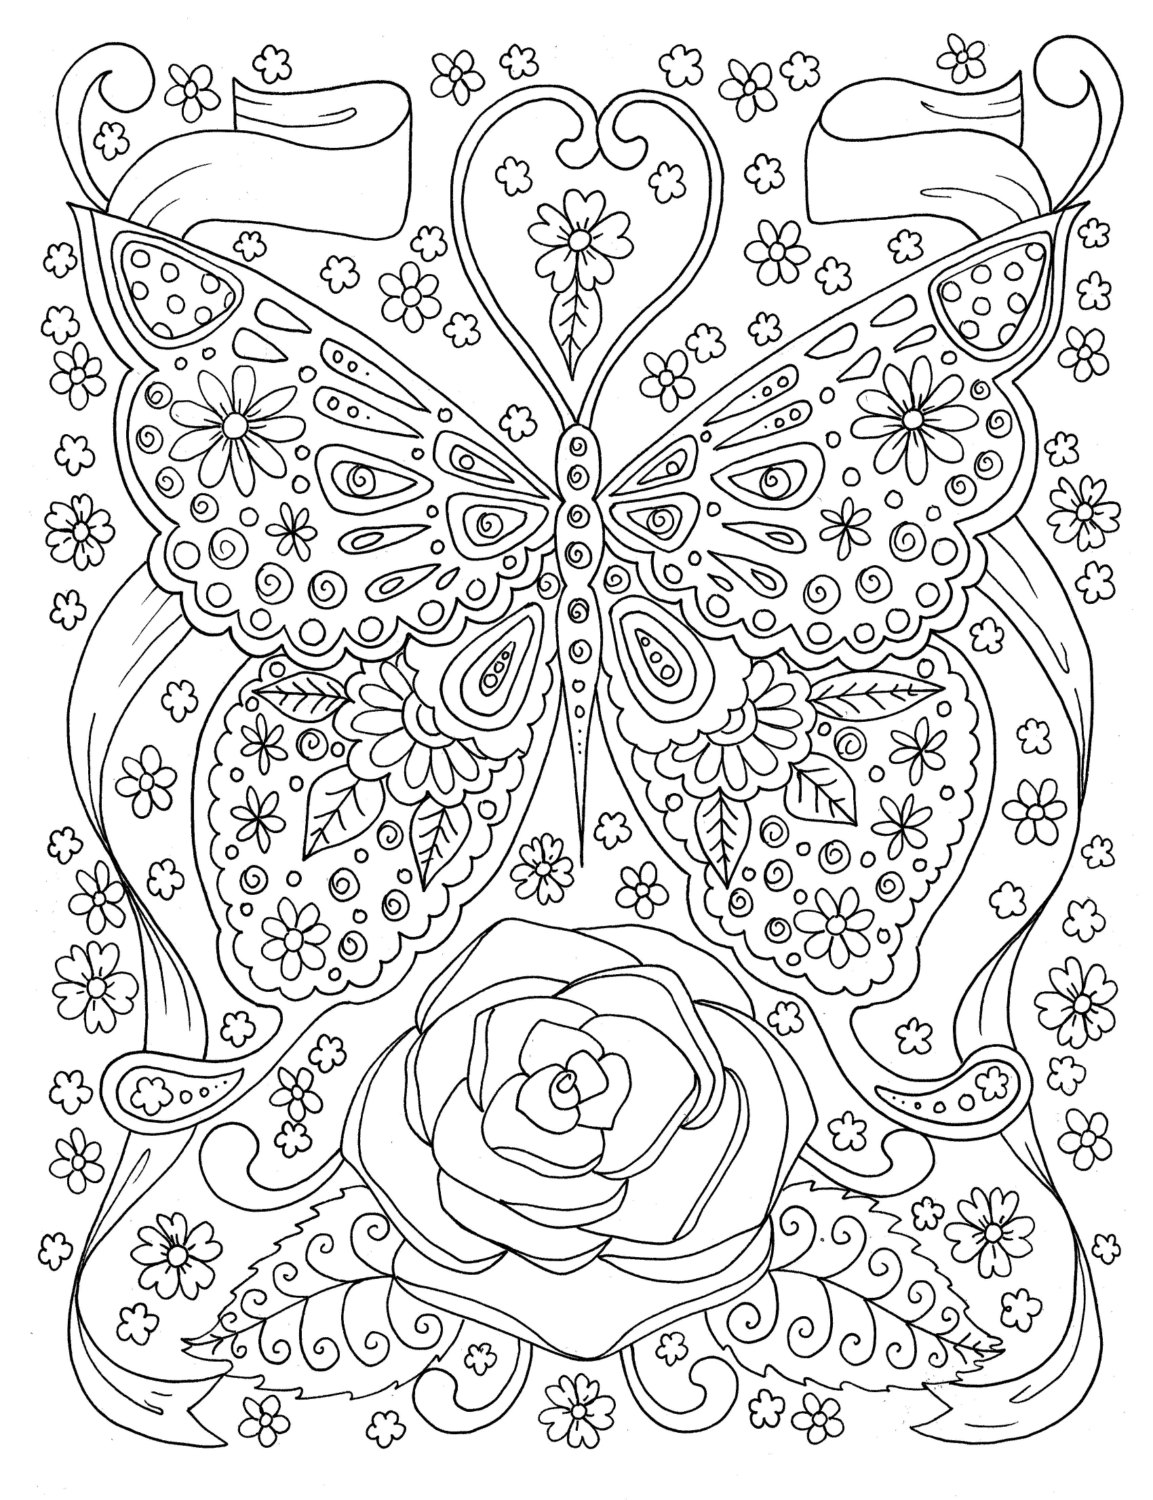 1153x1500 Butterfly Coloring Page Adult Coloring Book Digital Coloring Page